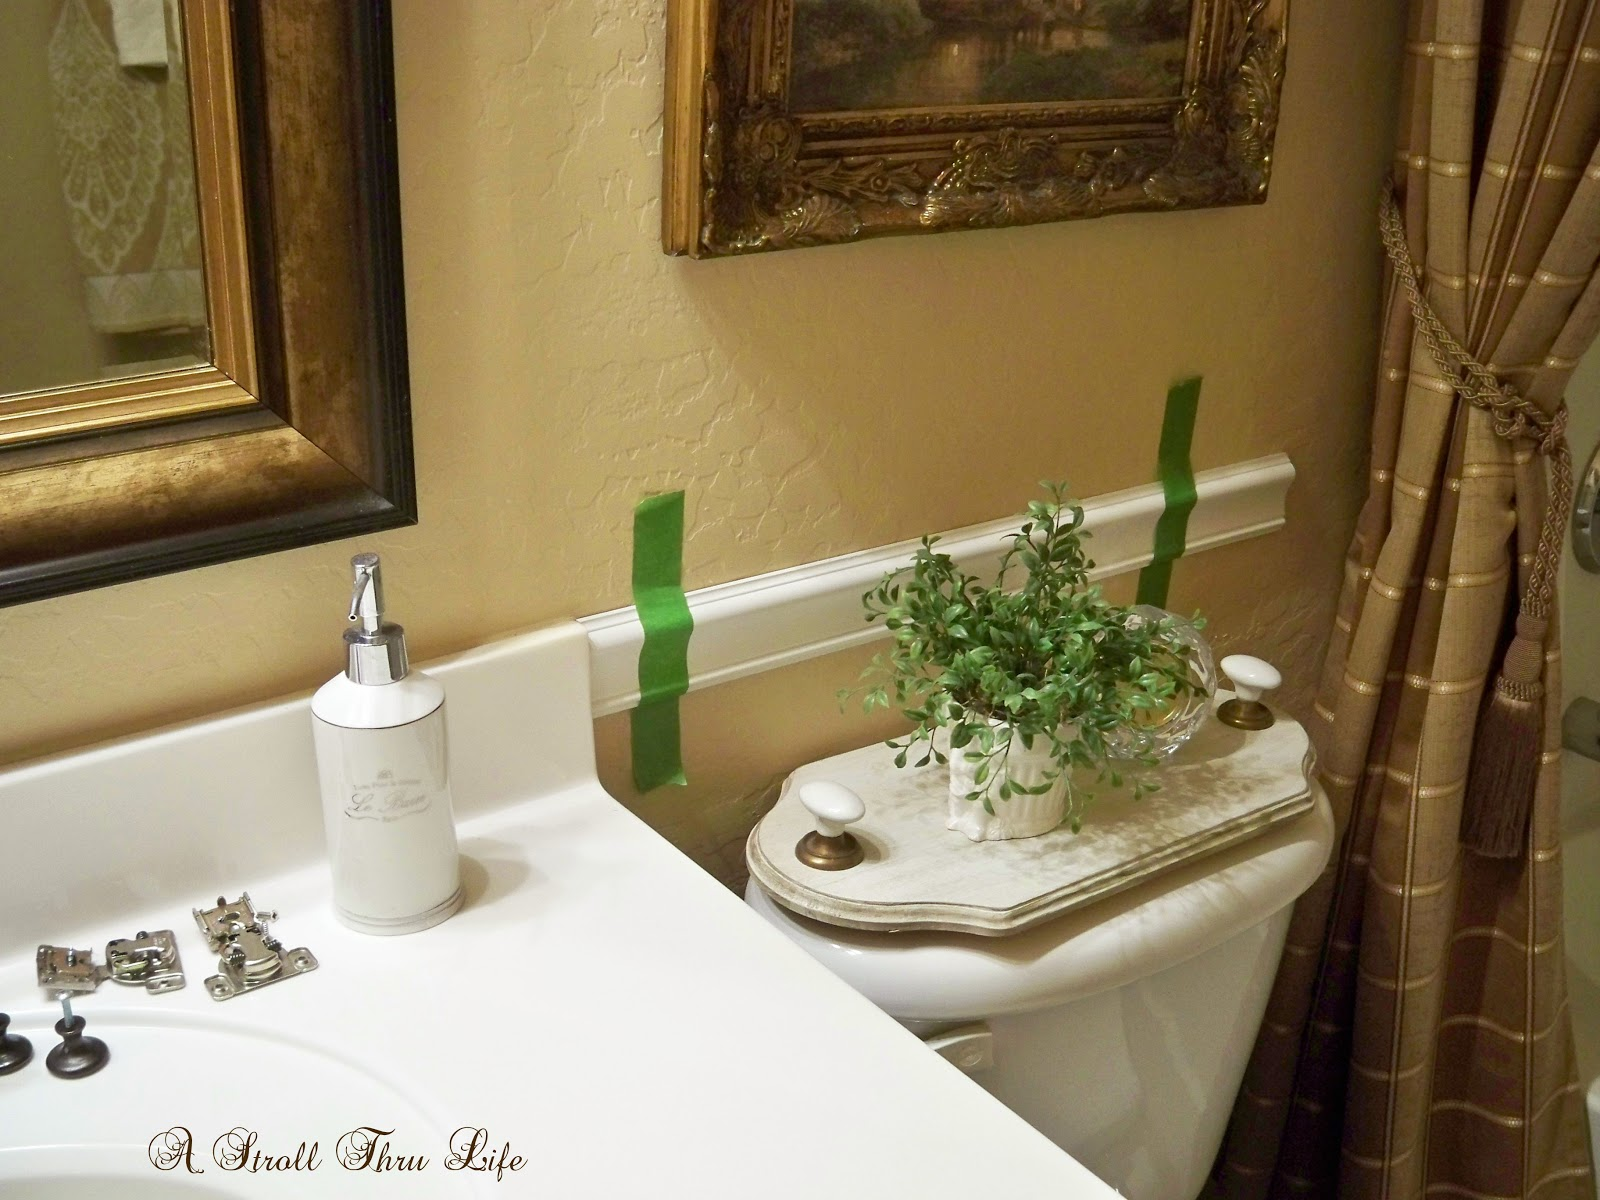 Exceptional Chair Rail In Bathroom Part - 13: A Stroll Thru Life: Hall Bathroom Makeover Update - Chair Rail U0026 Moldings